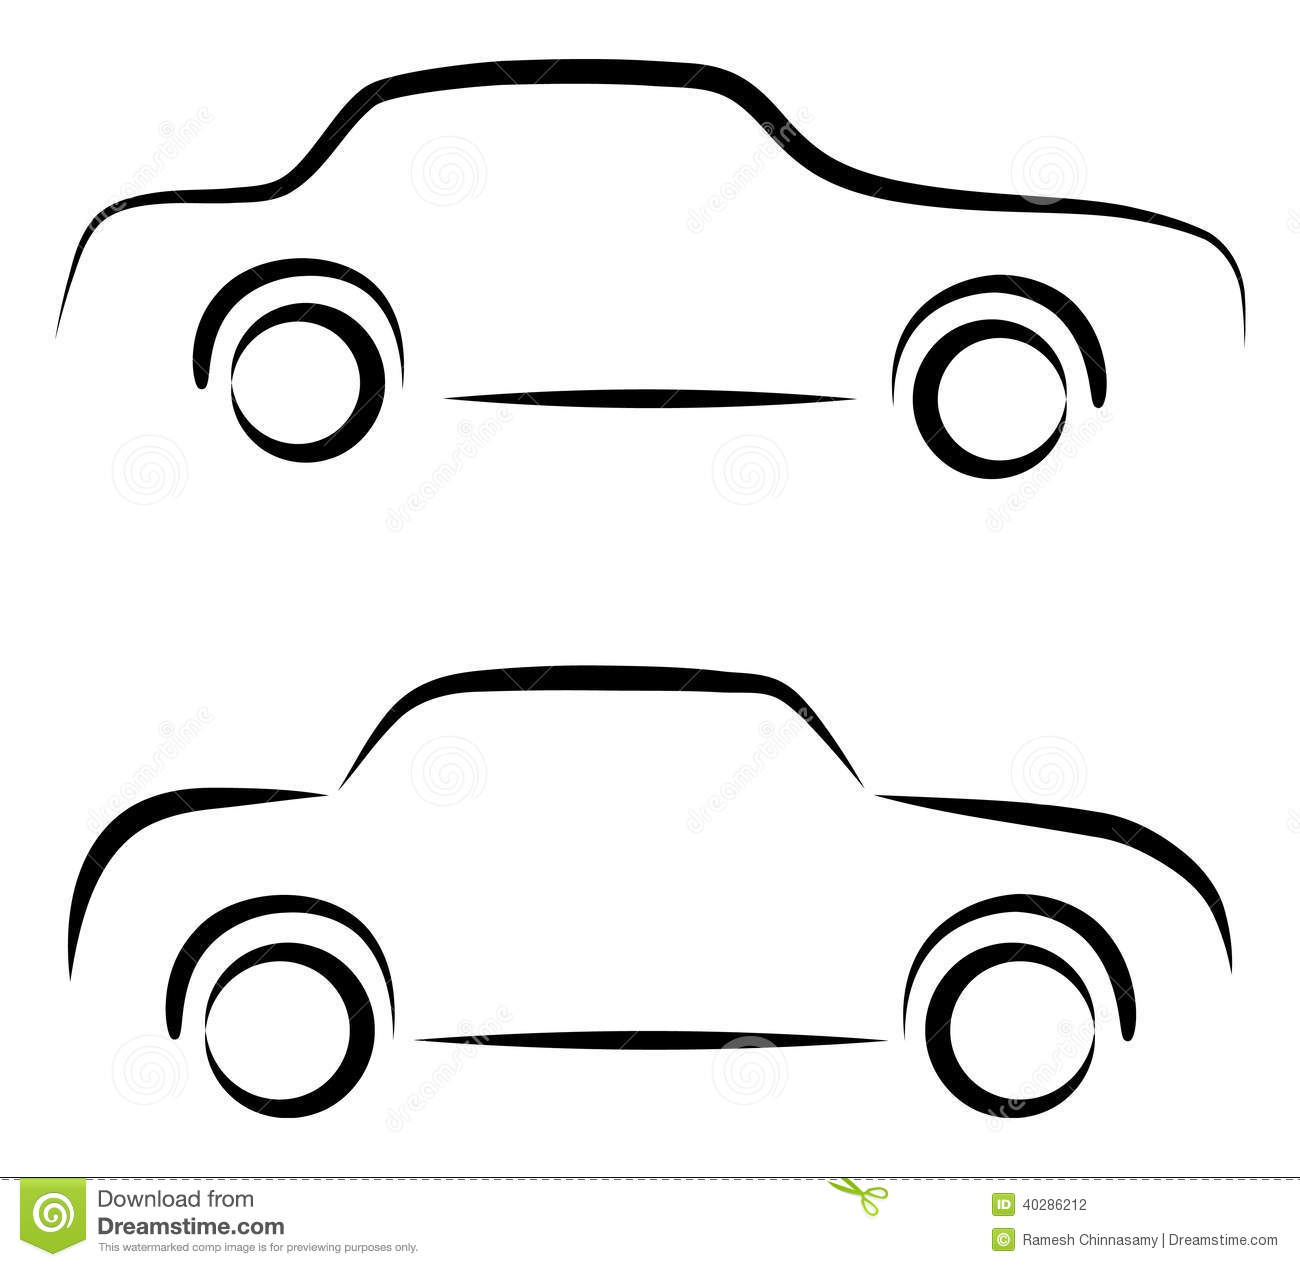 Simple Vector Line Art : Simple car vector images icon